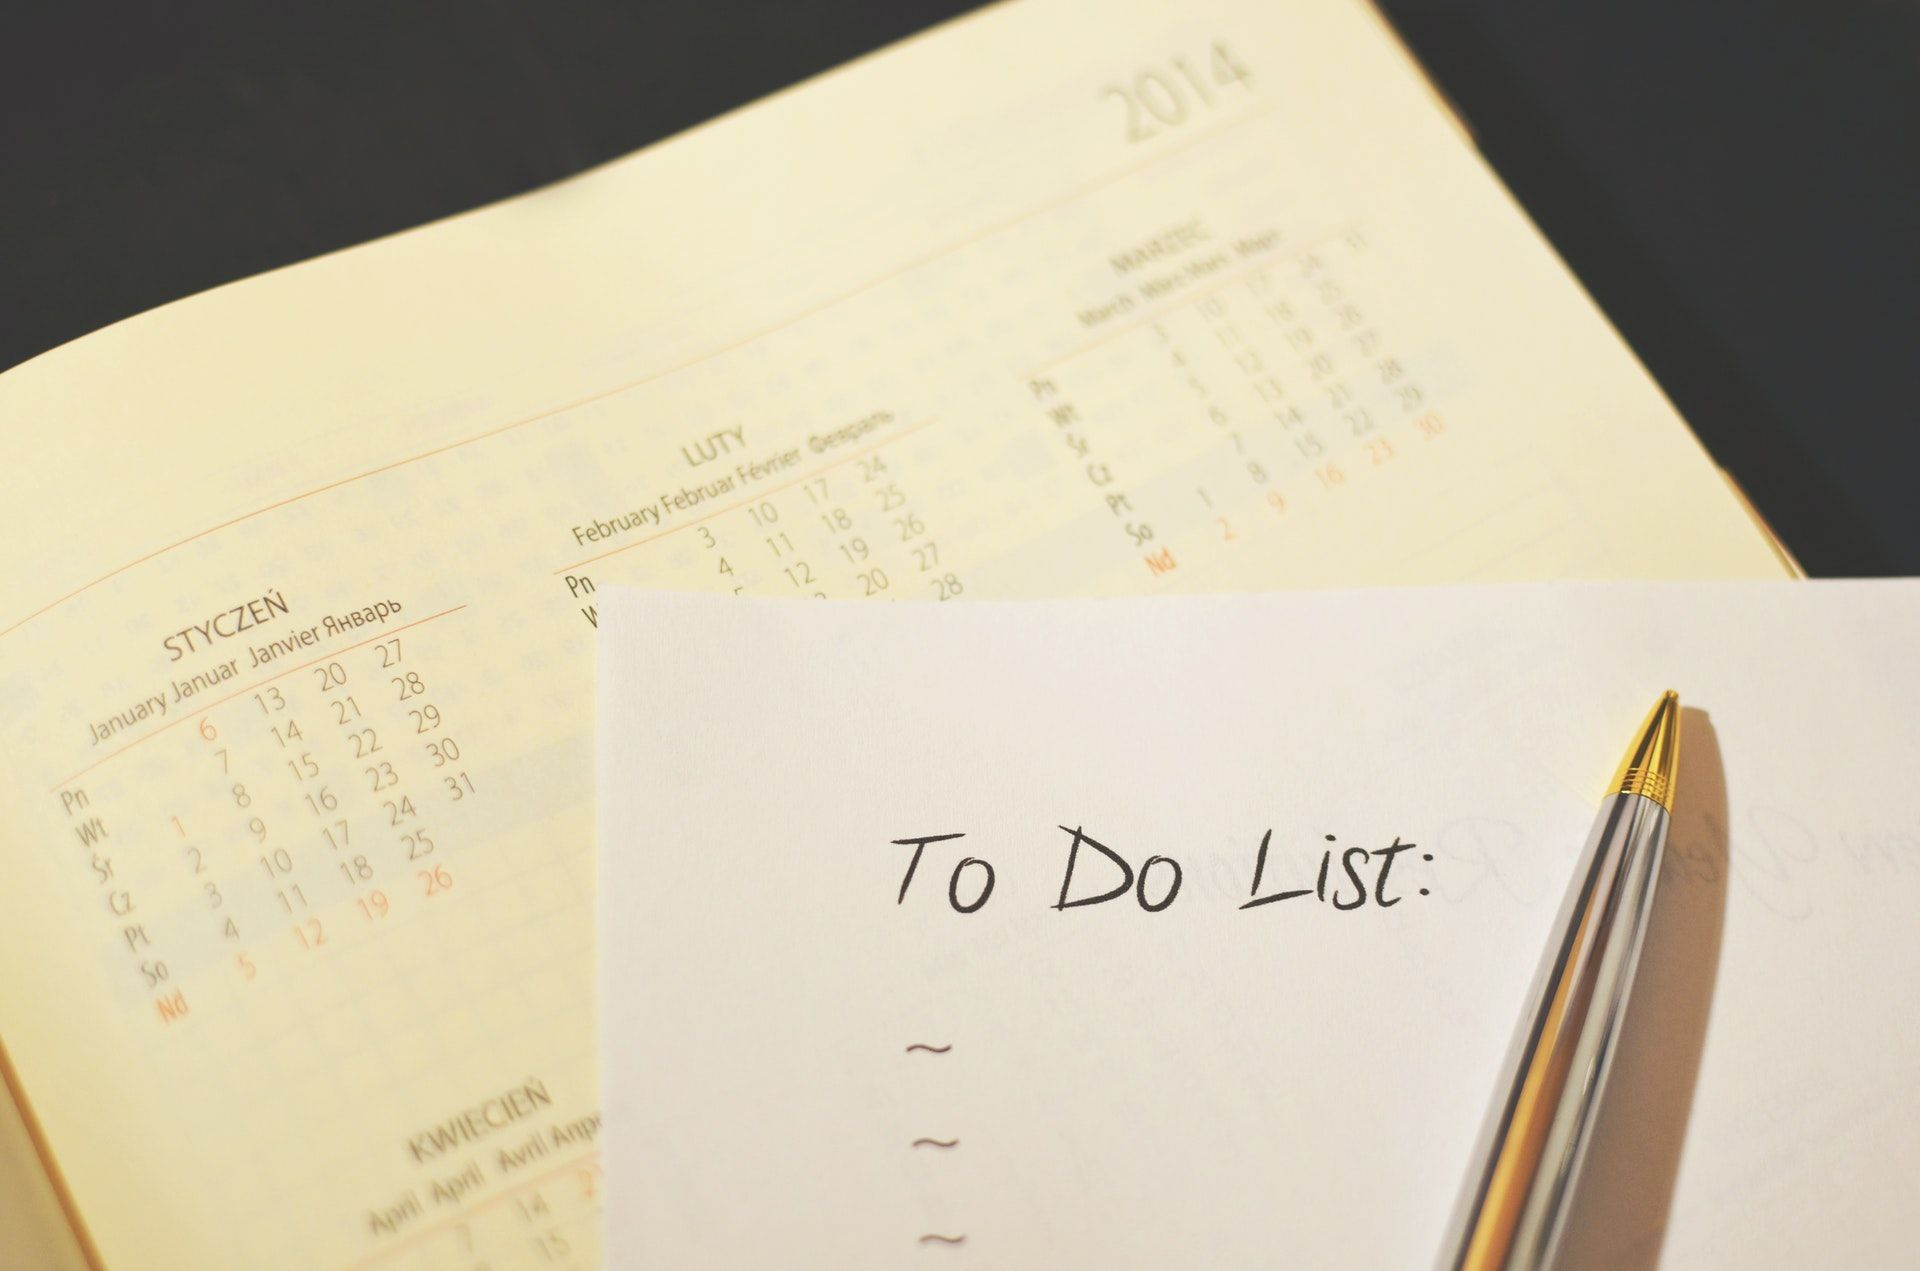 To do list on paper, how to prepare for the WSET exam